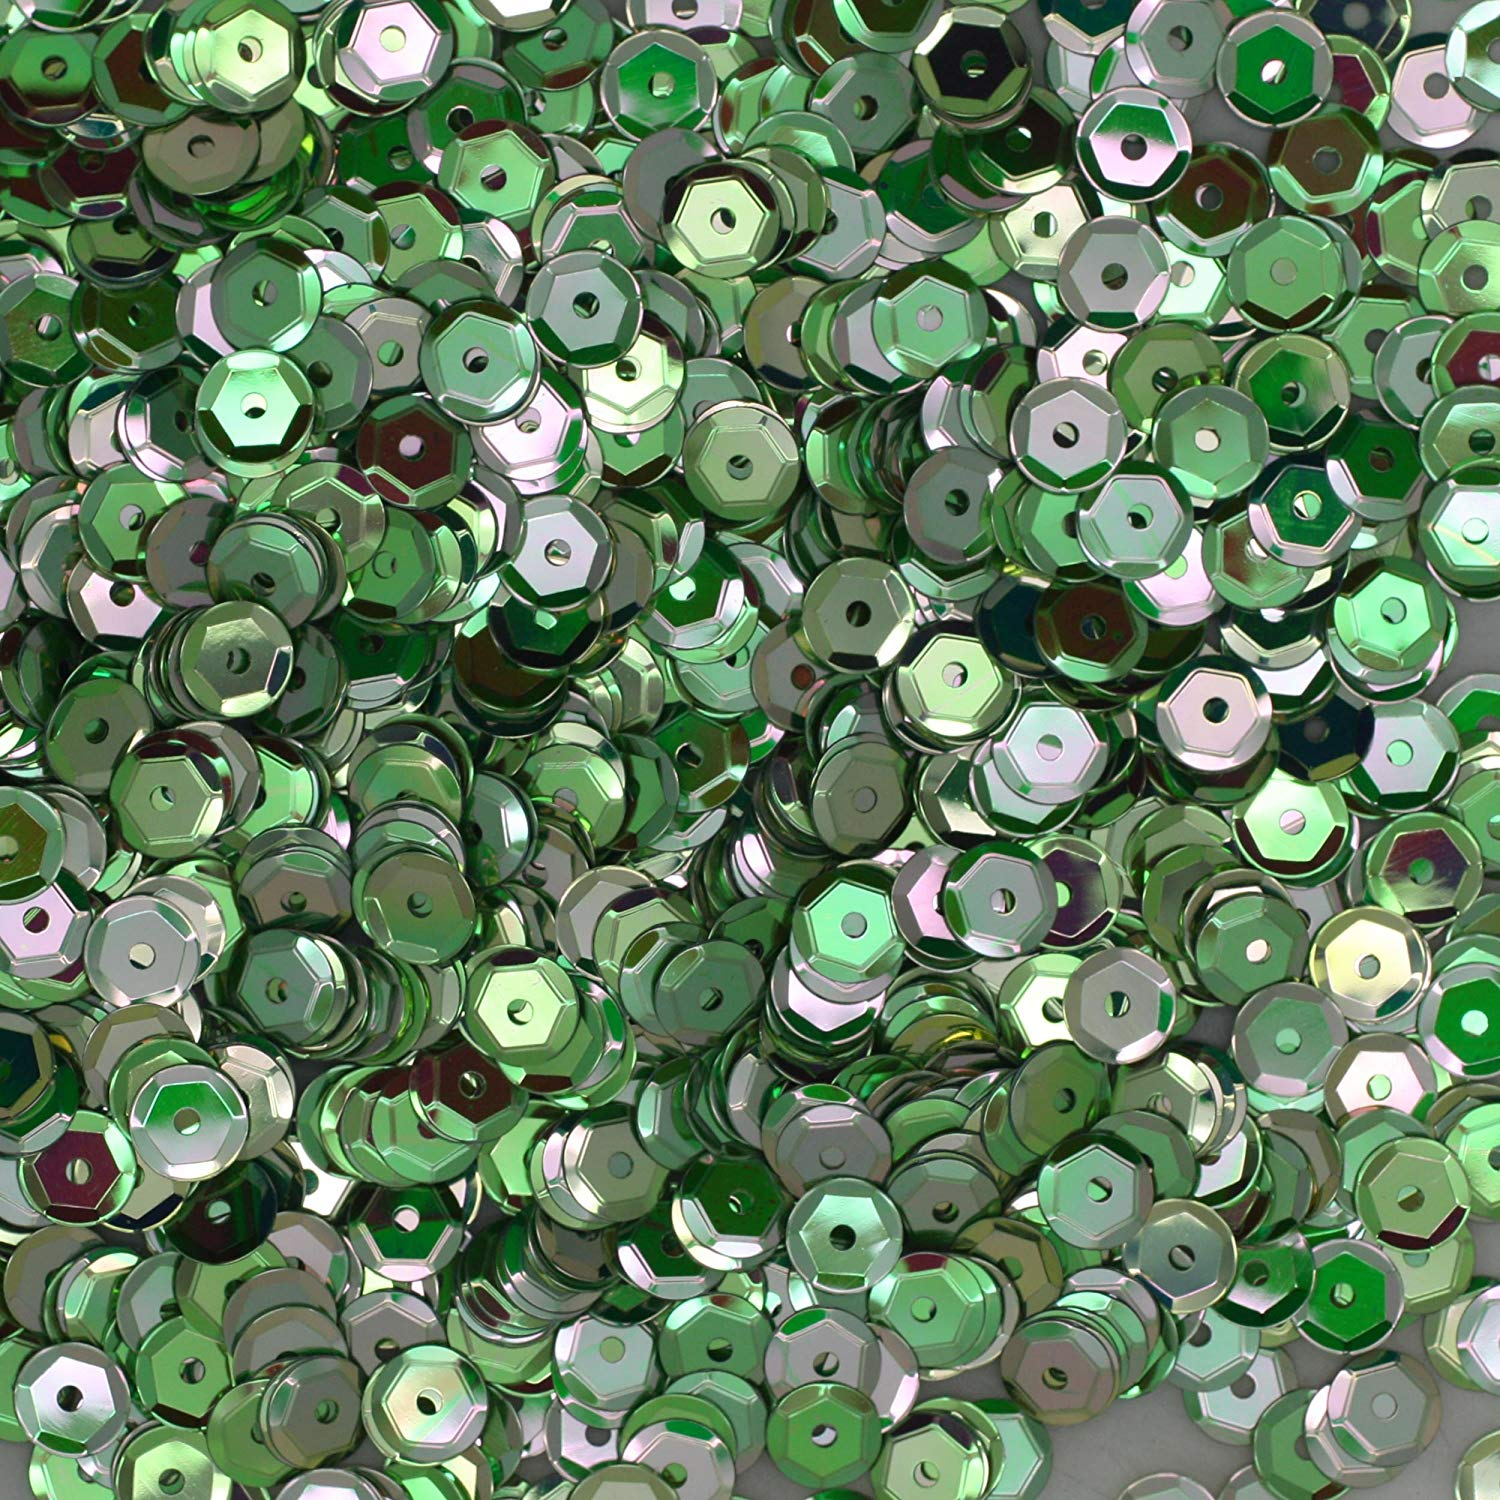 arts 5mm CUP SEQUINS Shiny Clear Crystal Loose sequins for embroidery crafts and embellishment. applique